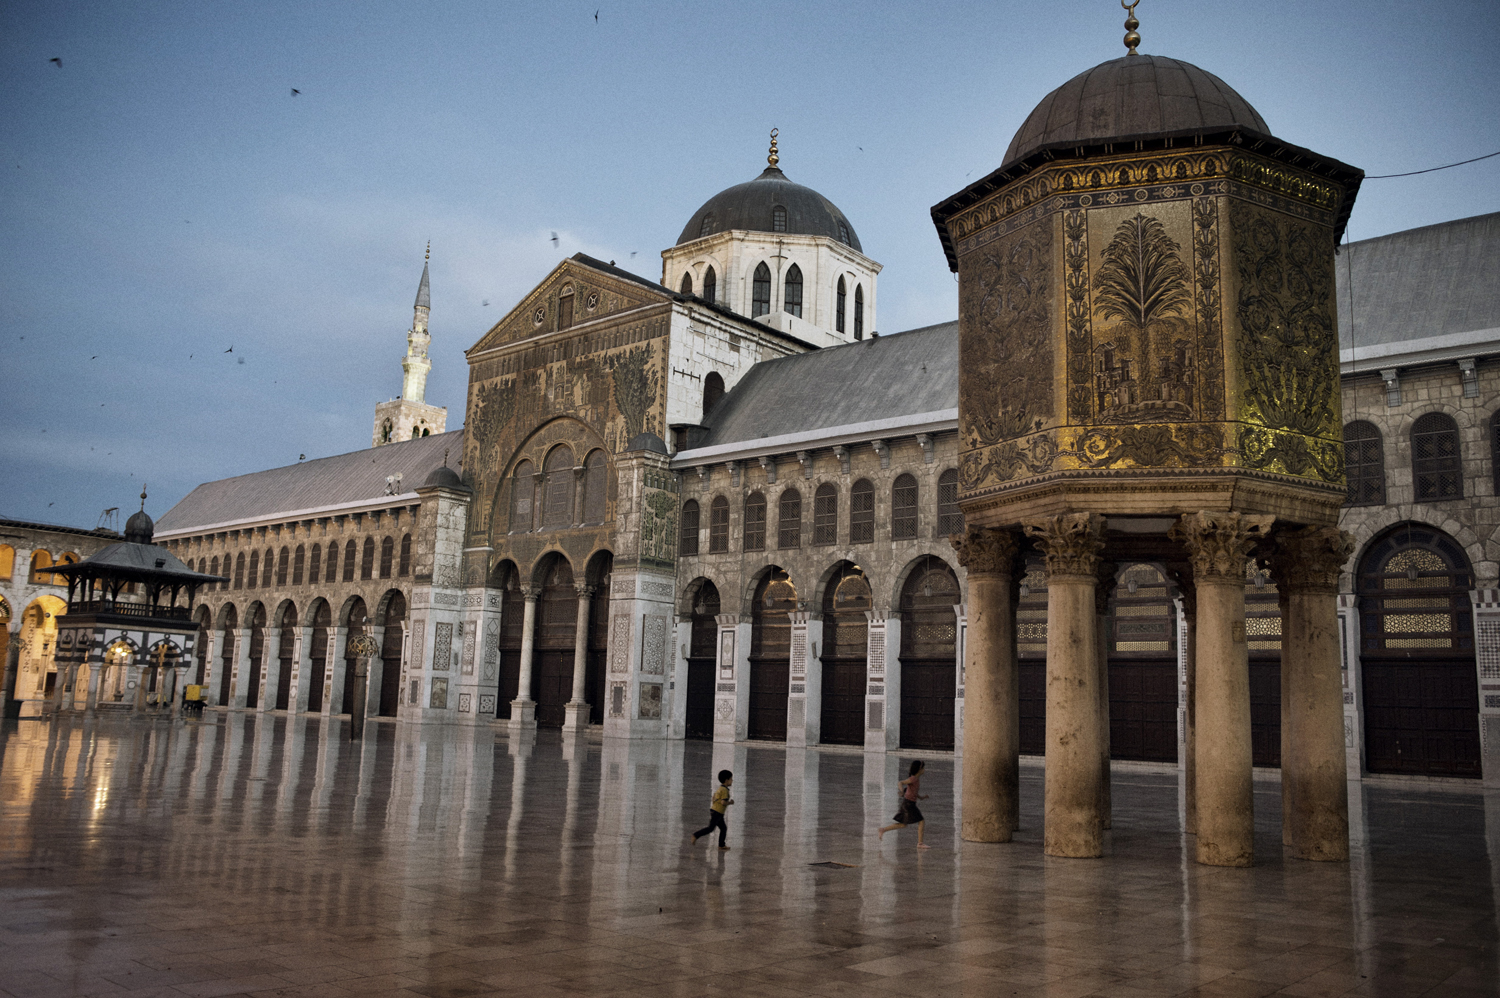 Two children run in the courtyard of the Umayyad Mosque in Damascus. May 18, 2014.